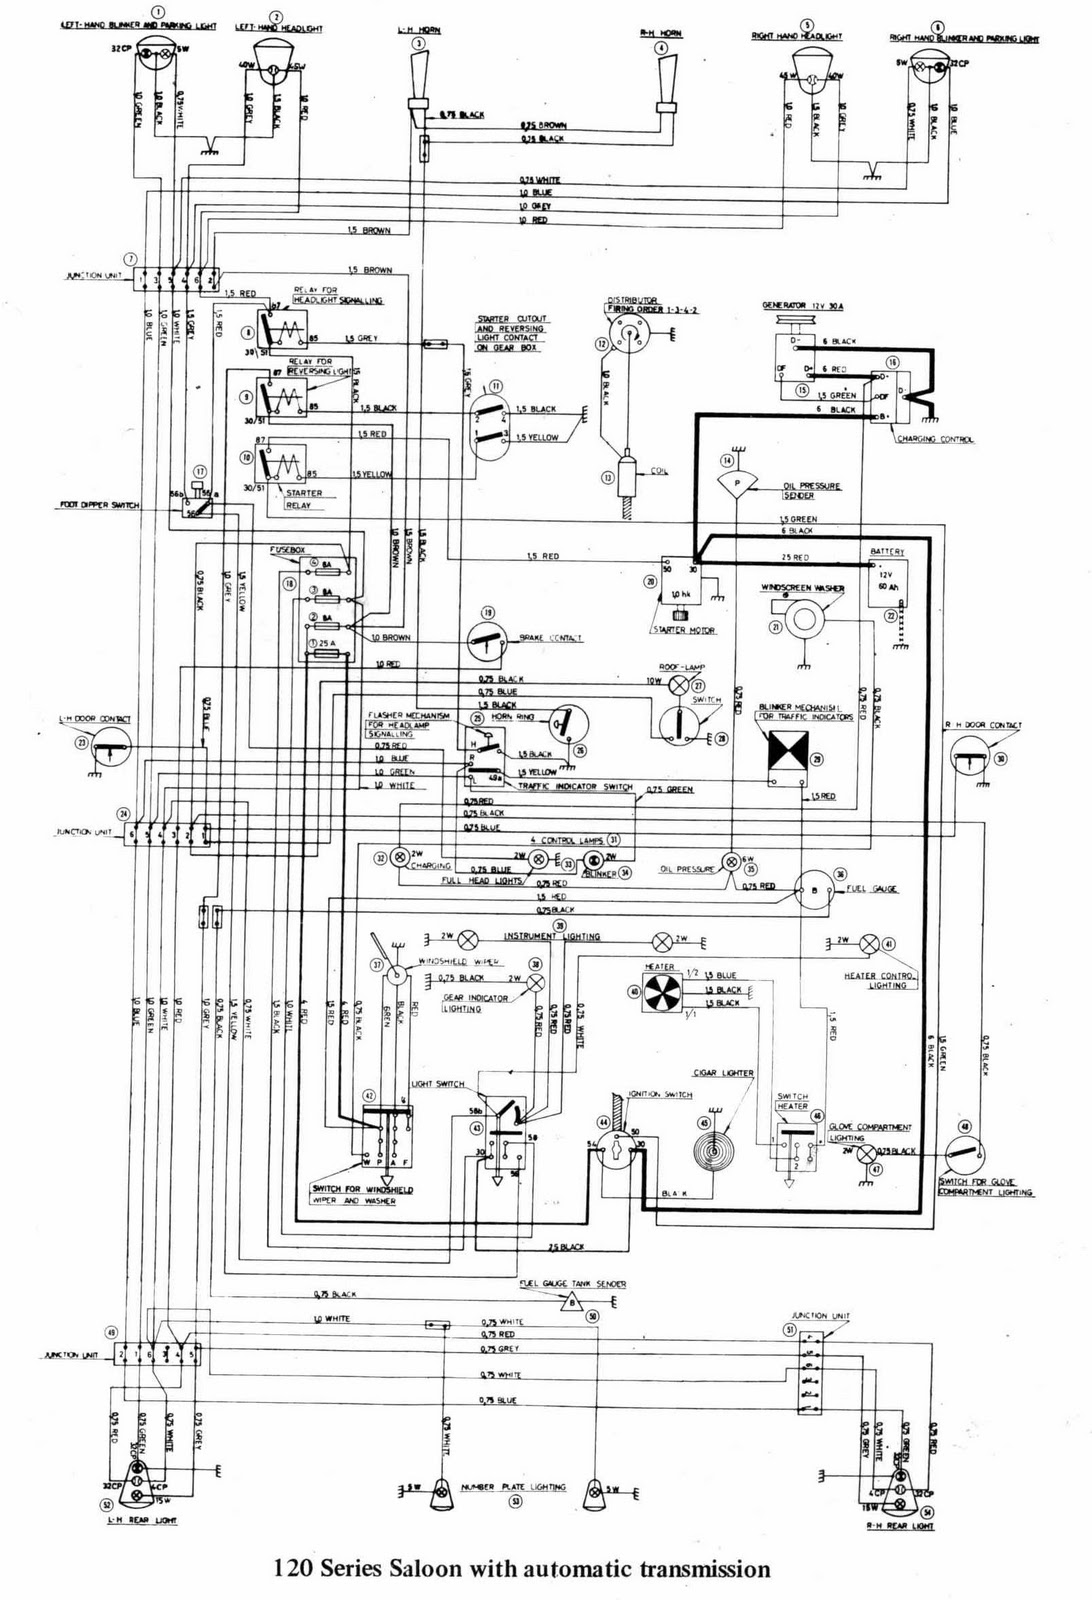 wiring diagram volvo 850 glt 1993 wiring diagrams 1997 volvo 850 parts volvo 850 tail light wiring [ 1092 x 1600 Pixel ]